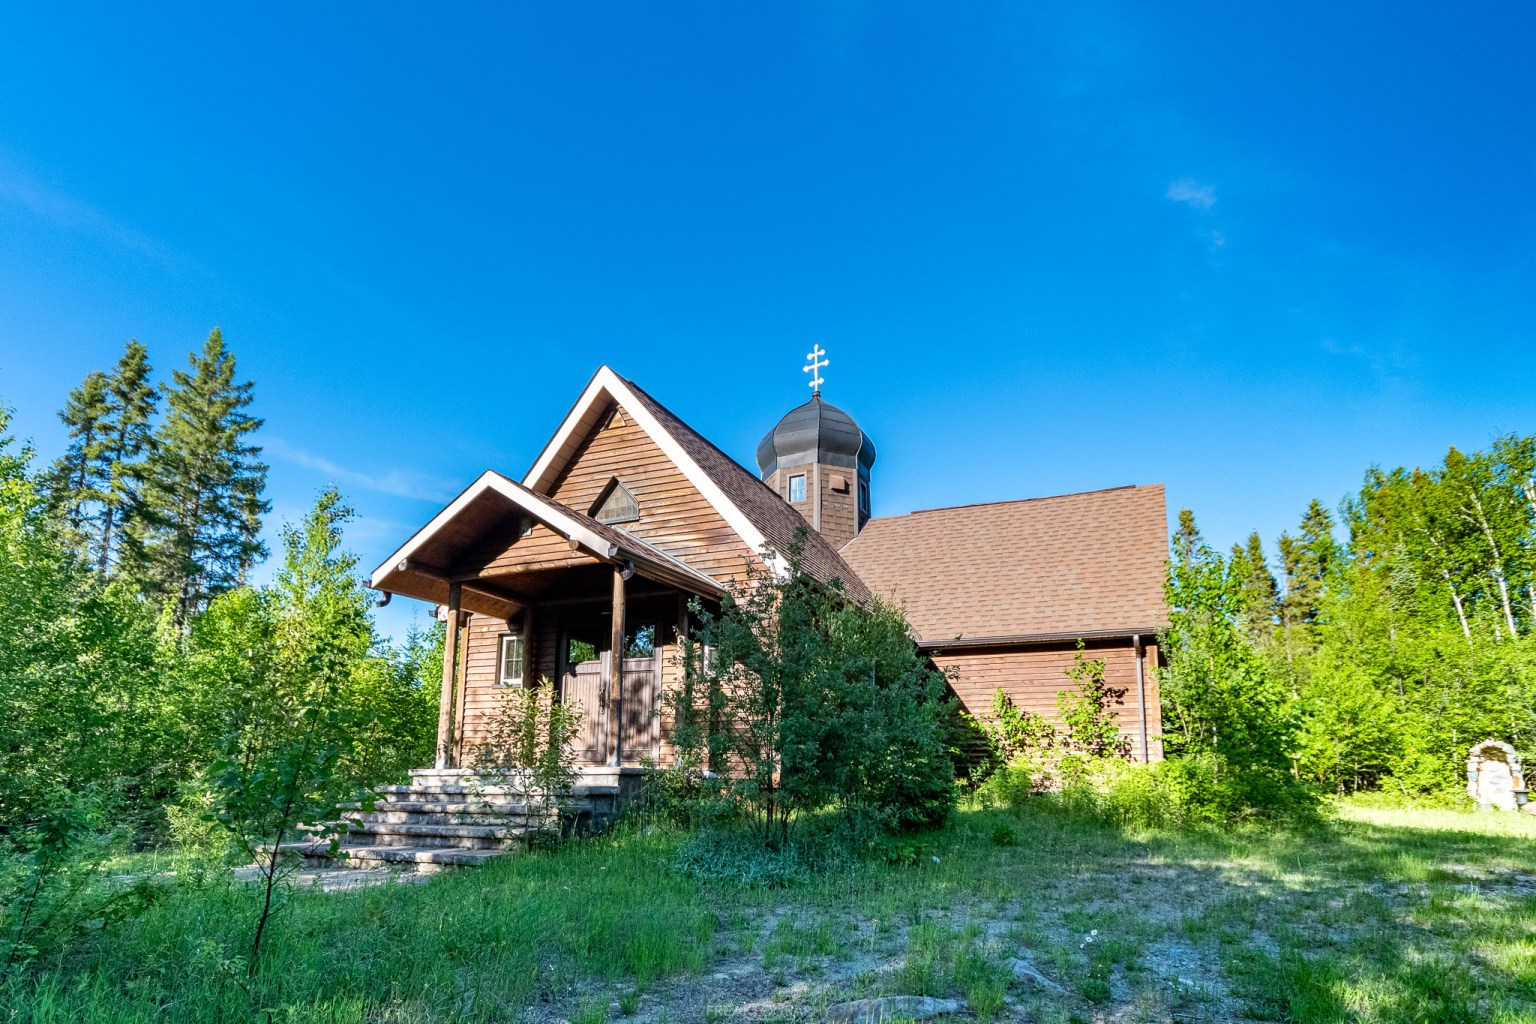 Abandoned Church In The Middle of a Forest